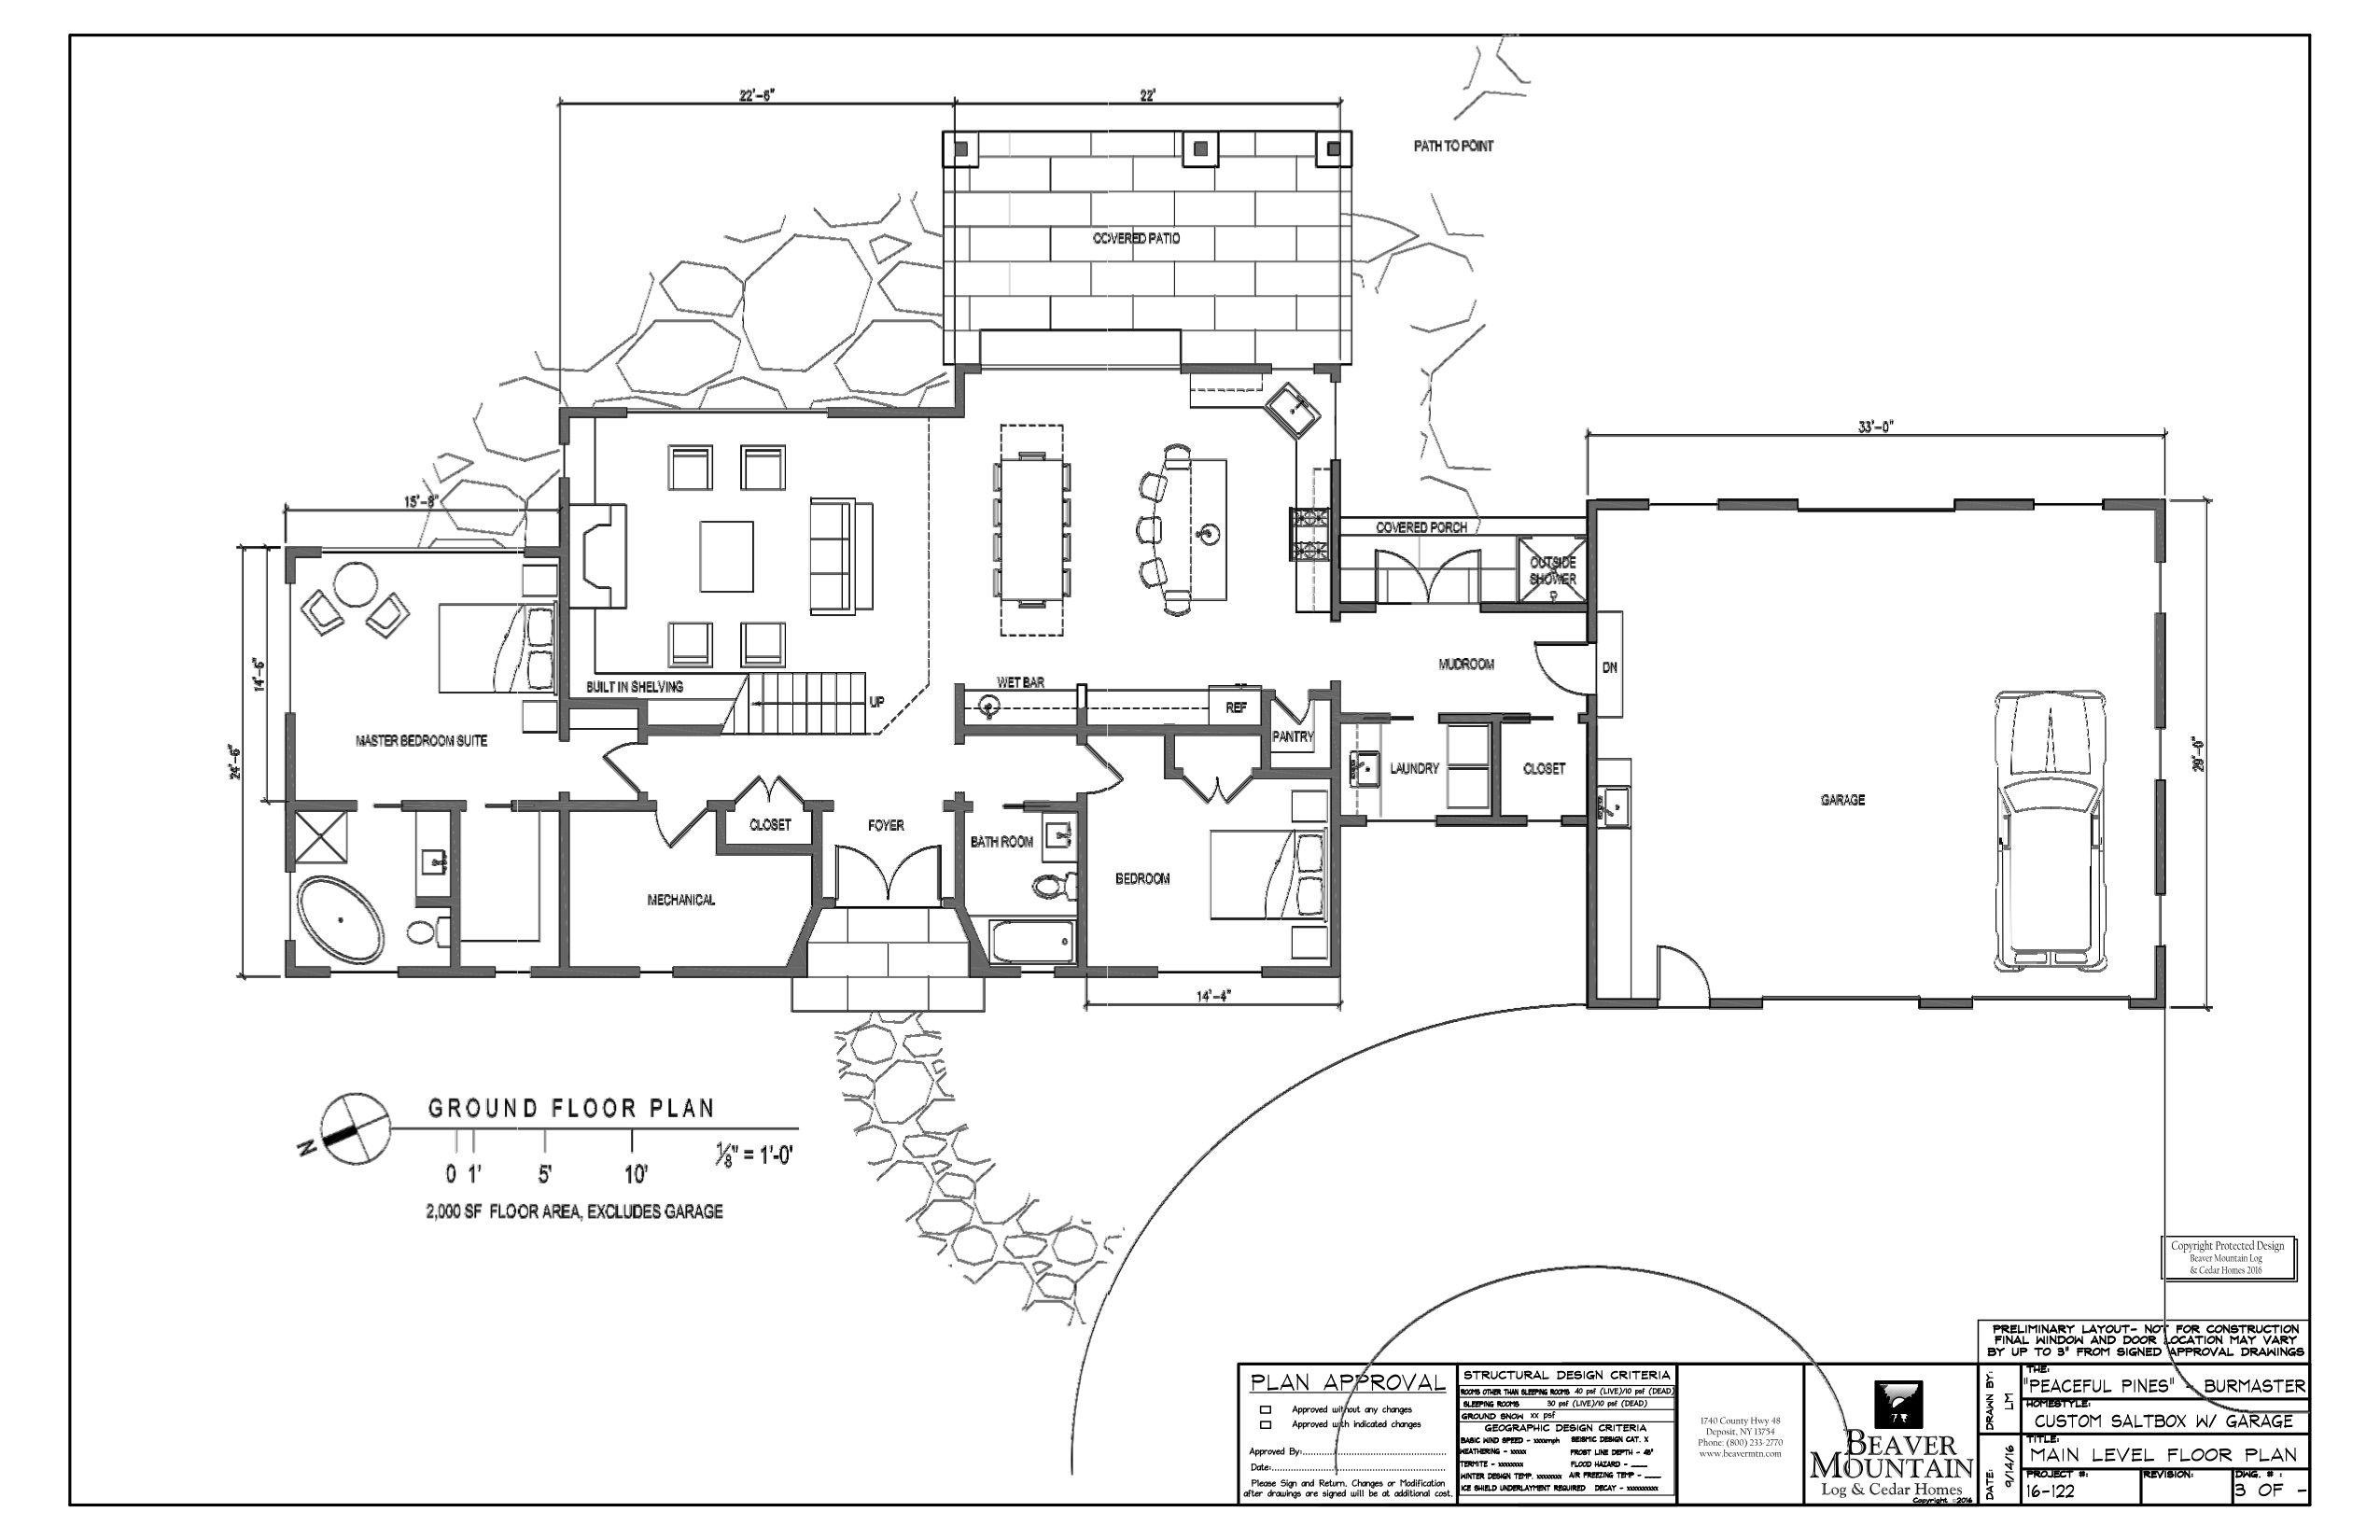 Burmaster First Floor Plan Conceptual Drawing Beavermountainloghomes Floorplan Drawing Concepts Customdesign Custom Floor Plans Floor Plans Cedar Homes